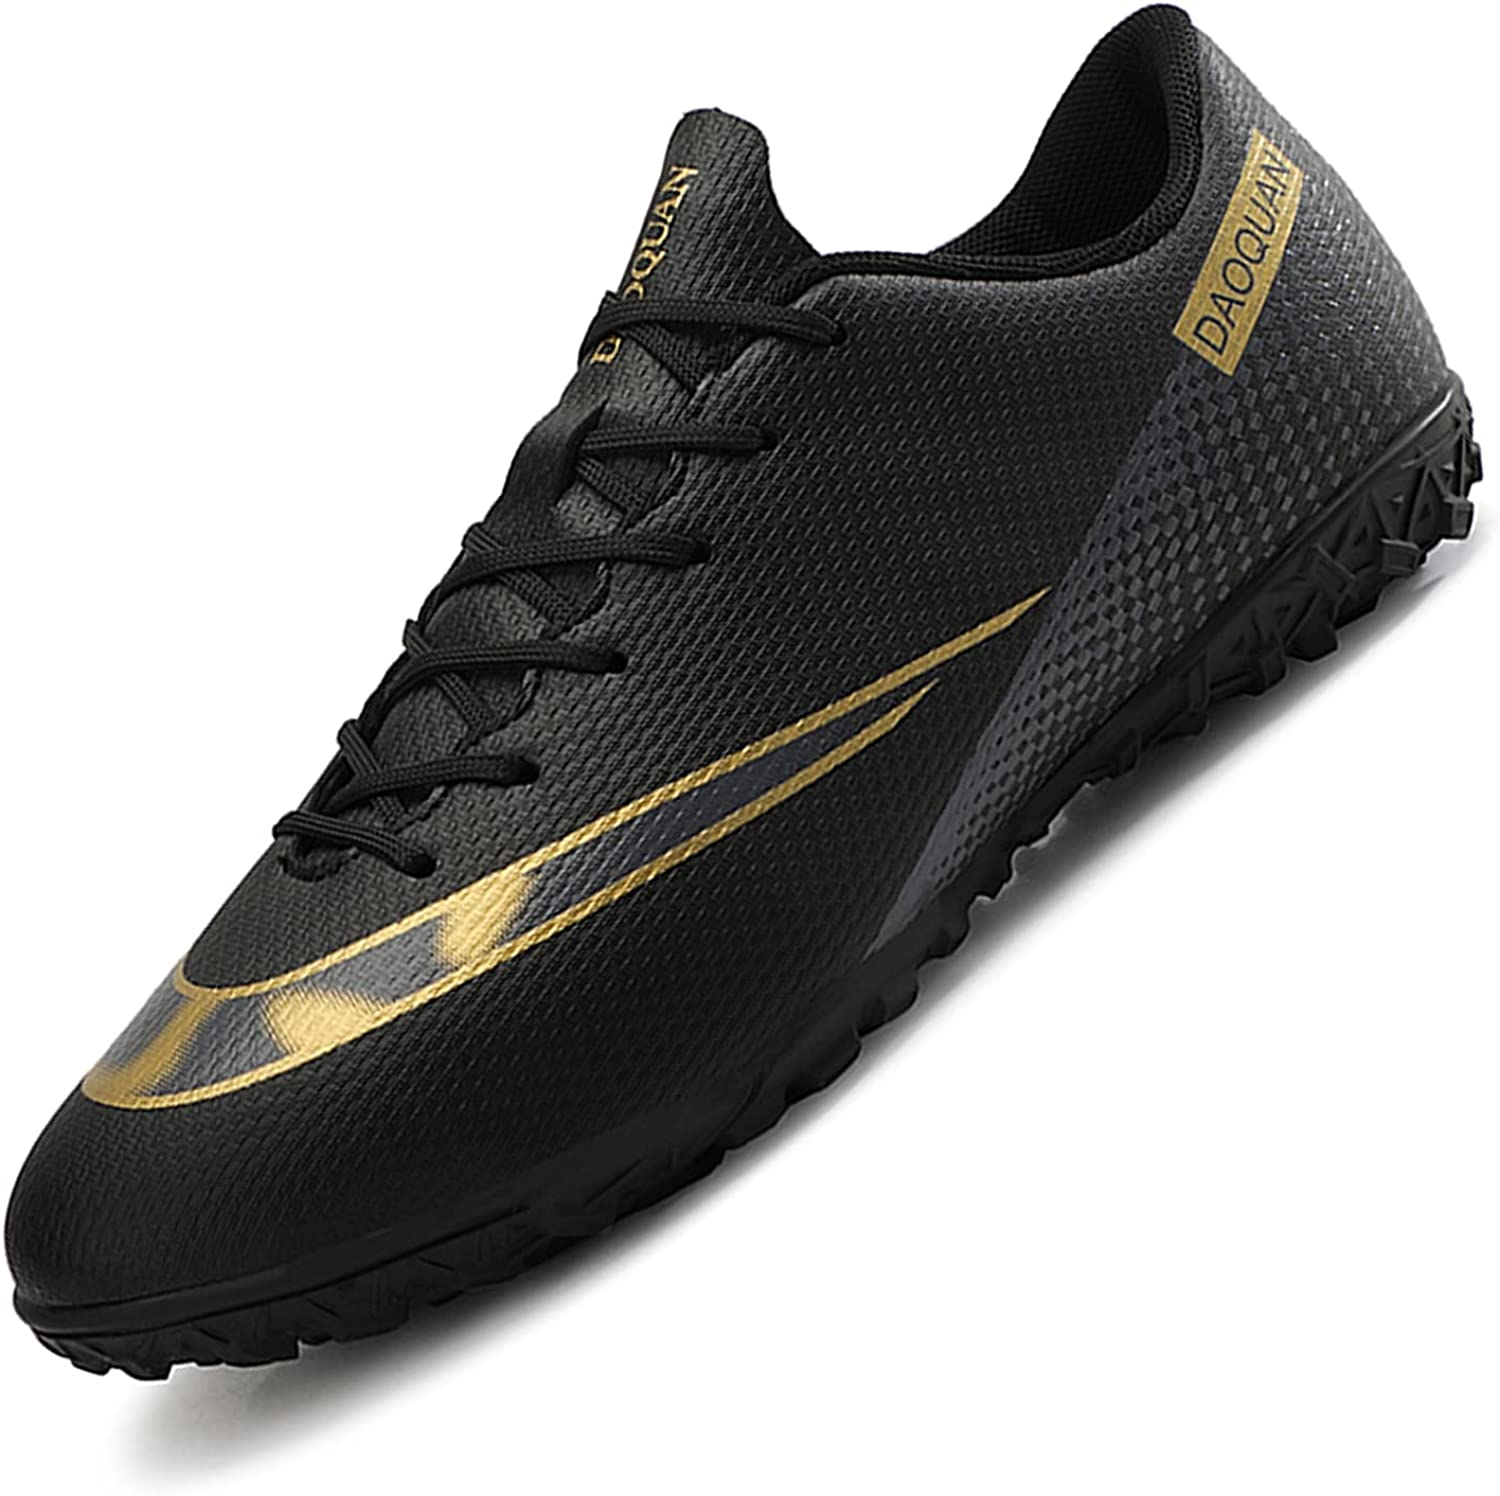 HaloTeam Men's Max 68% Phoenix Mall OFF Soccer Shoes Cleats High-Top Breatha Professional